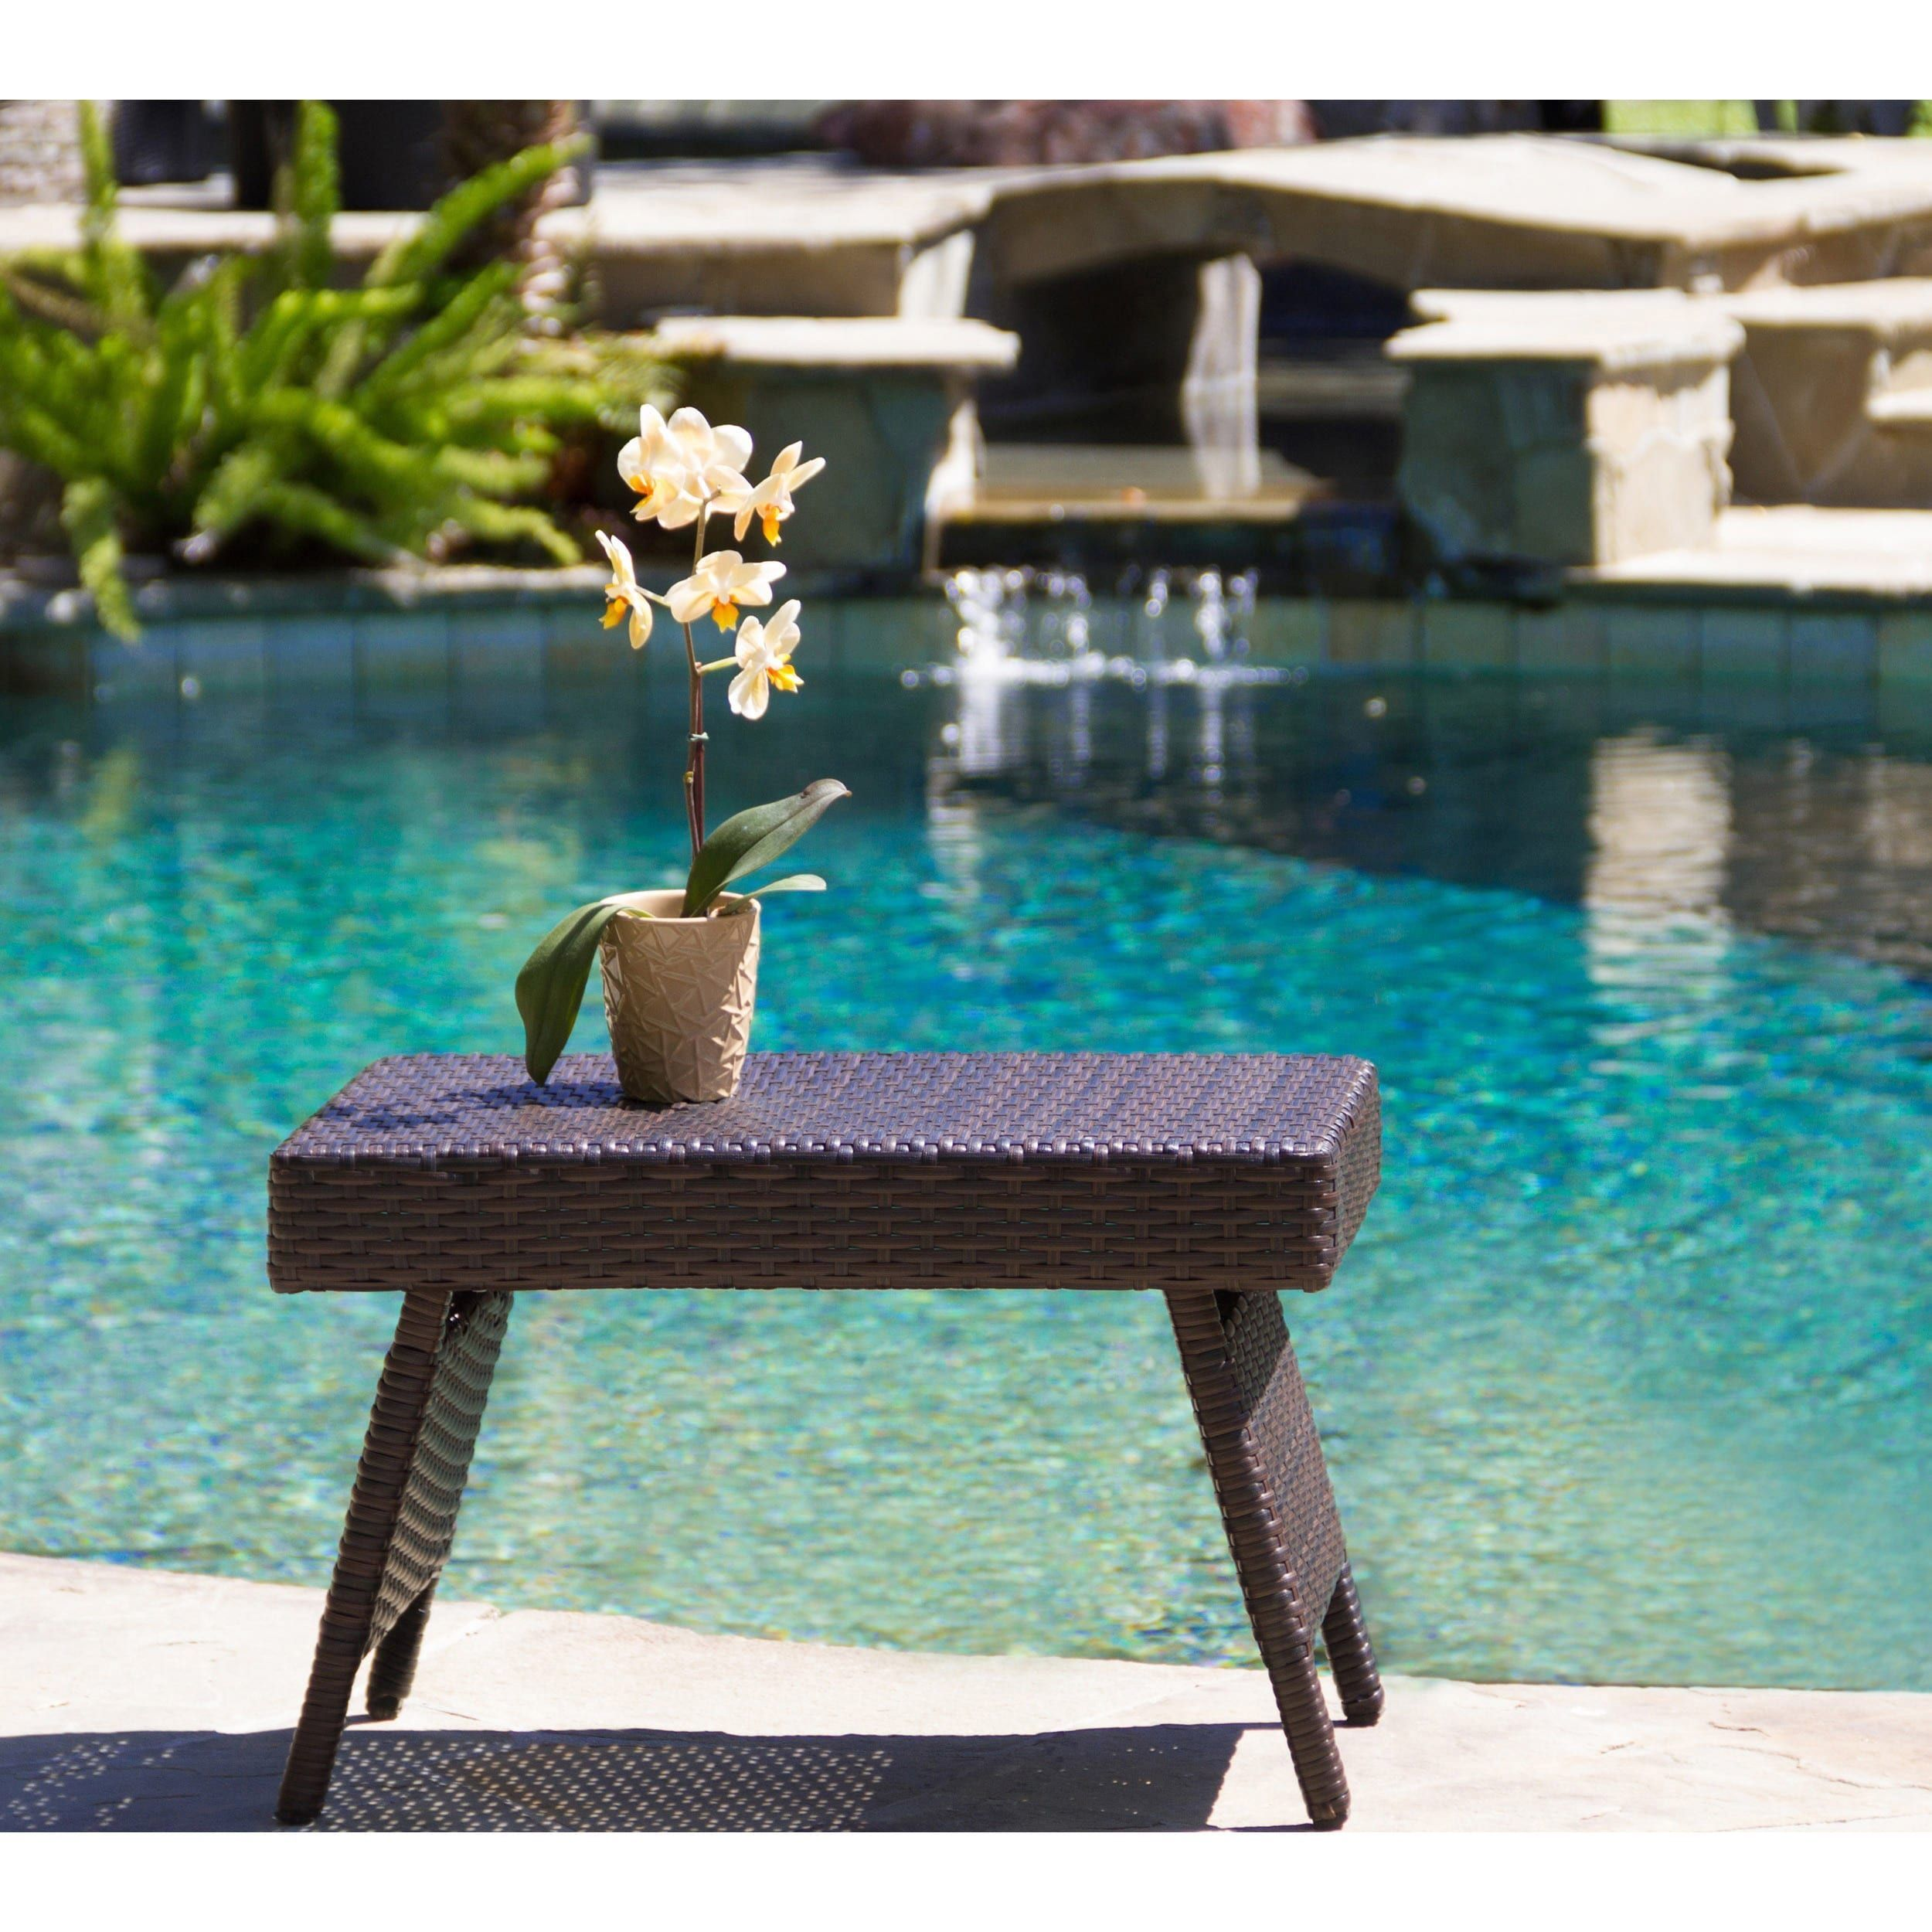 Home garden furniture  Outdoor Wicker Adjustable Folding Table by Christopher Knight Home